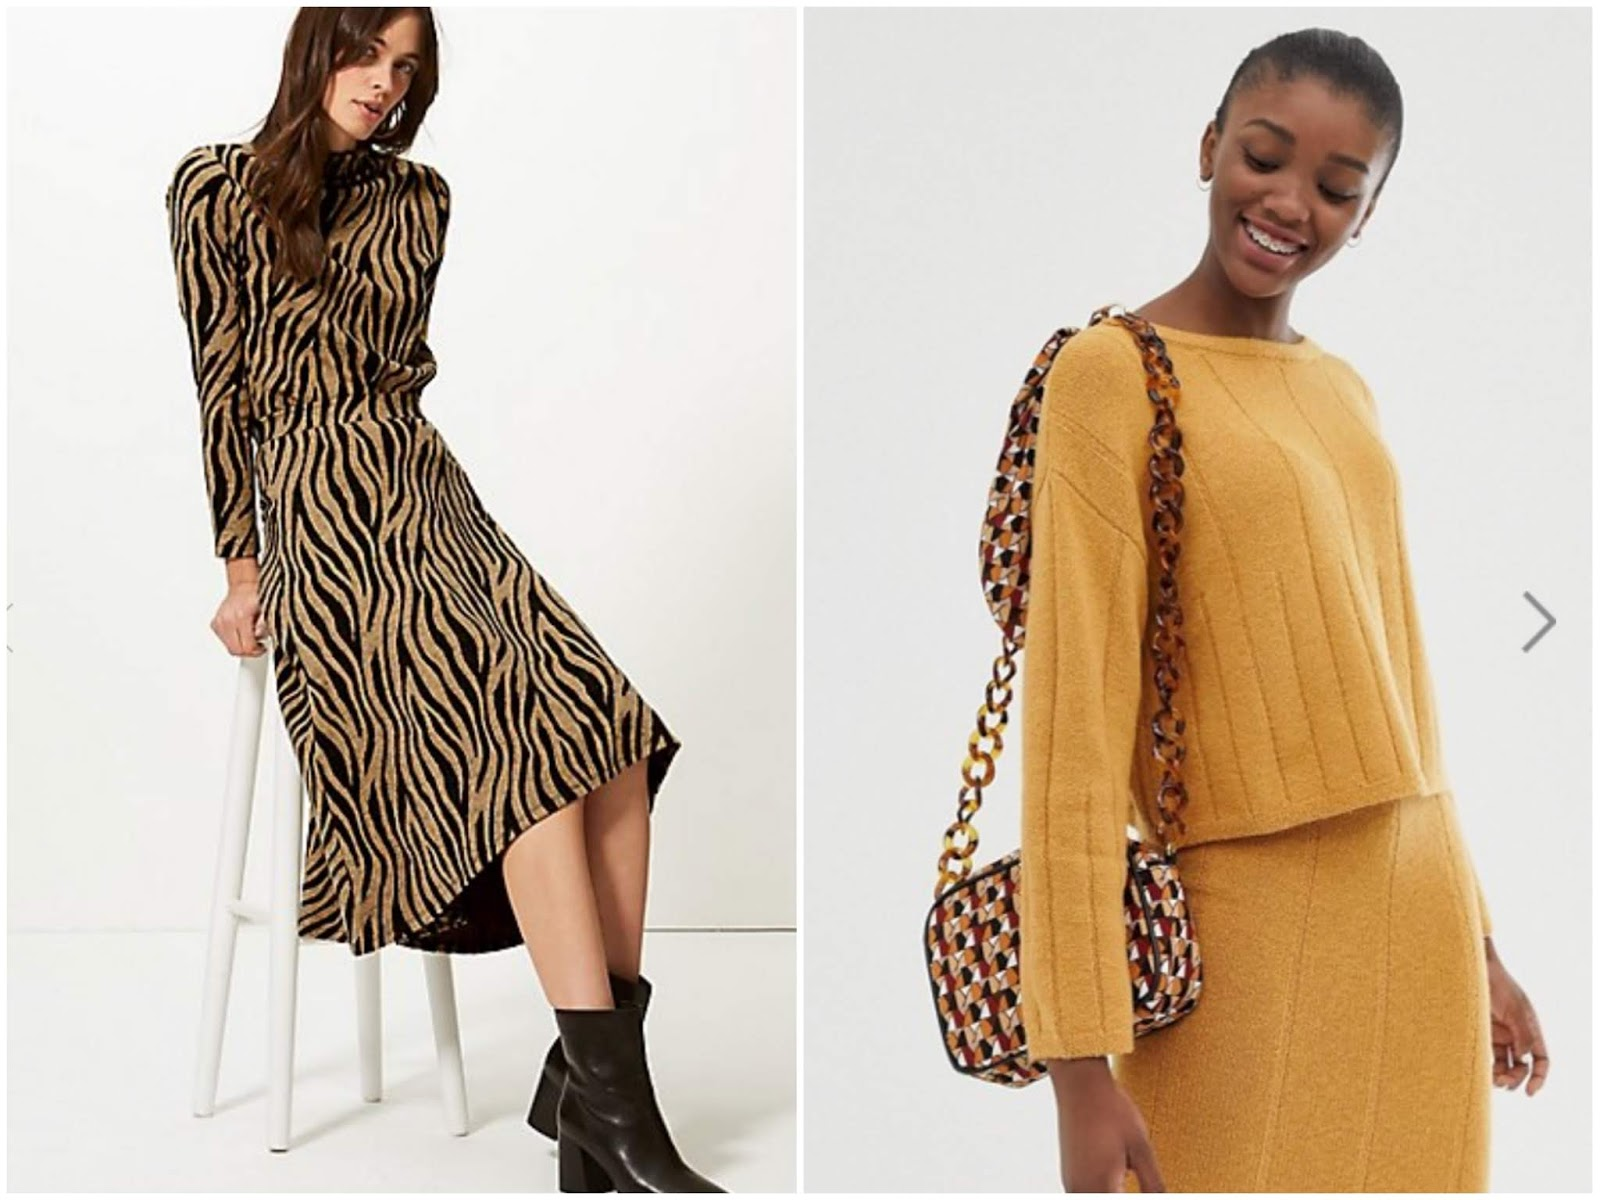 Knitwear Co-Ords Sets For Now Into Spring   Style Me Curvy